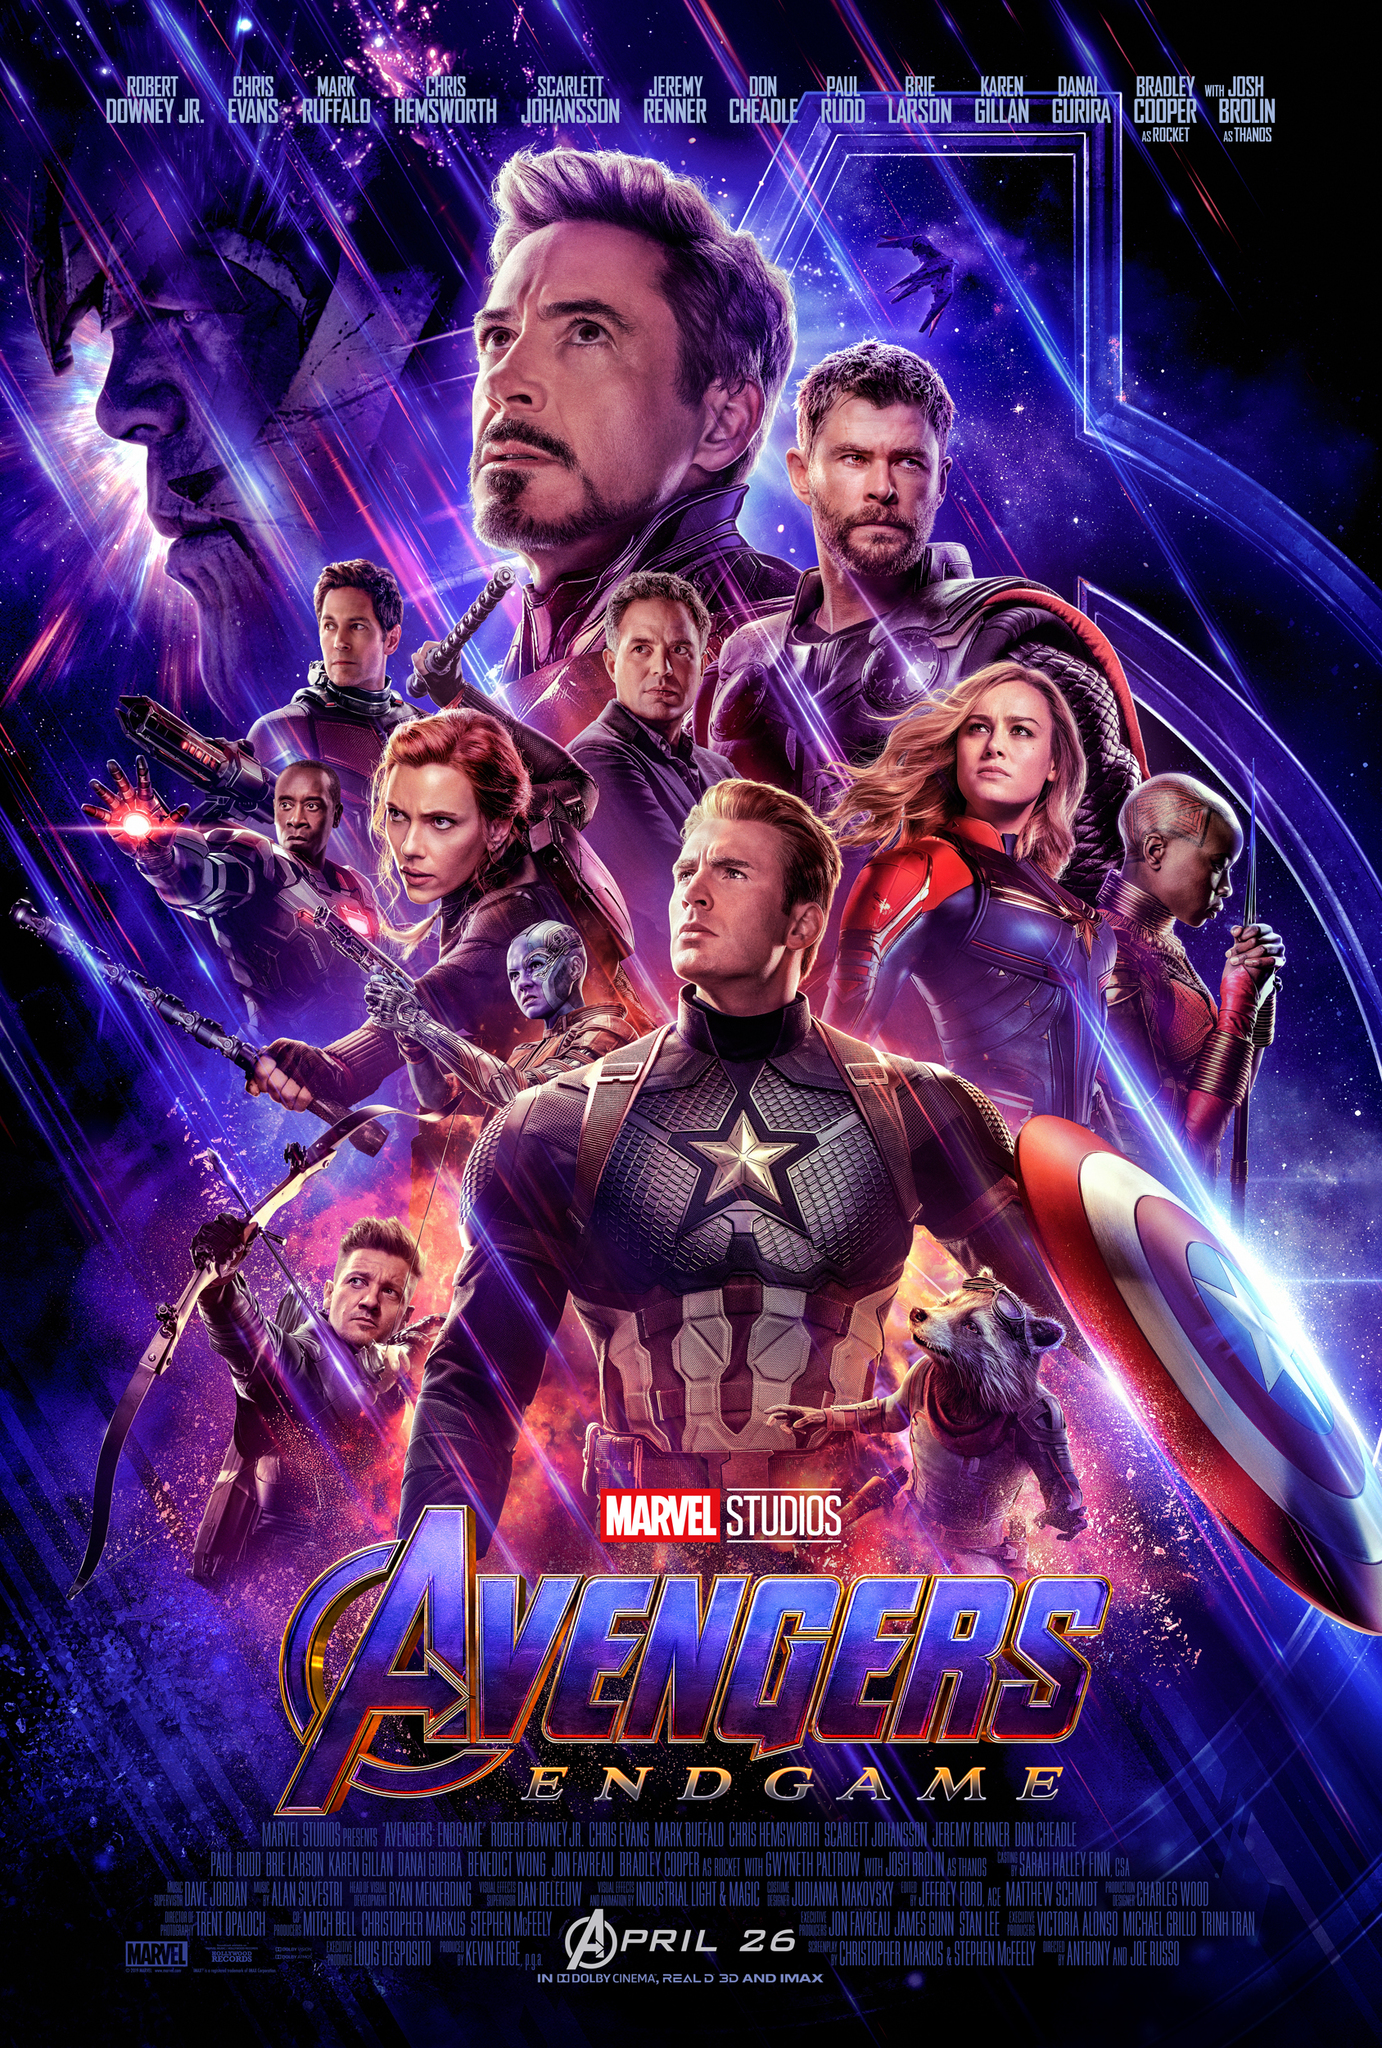 Image result for endgame movie poster imdb""